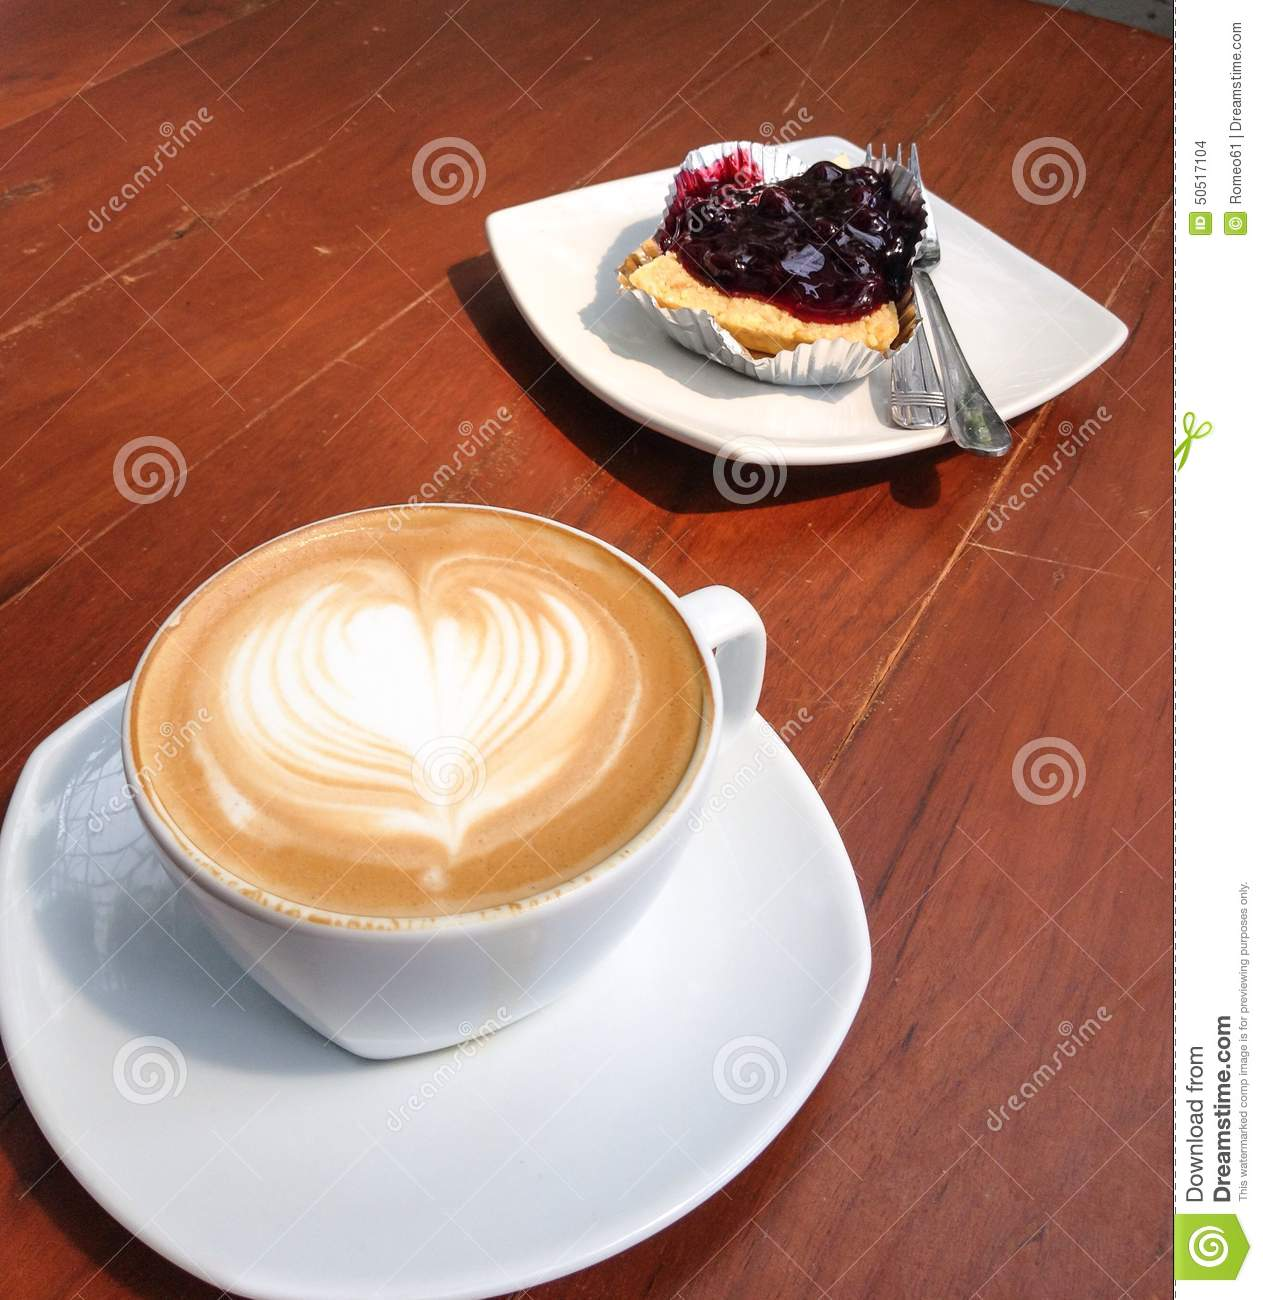 Cappuccino And Blueberry Pastry Stock Photo - Image: 50517104